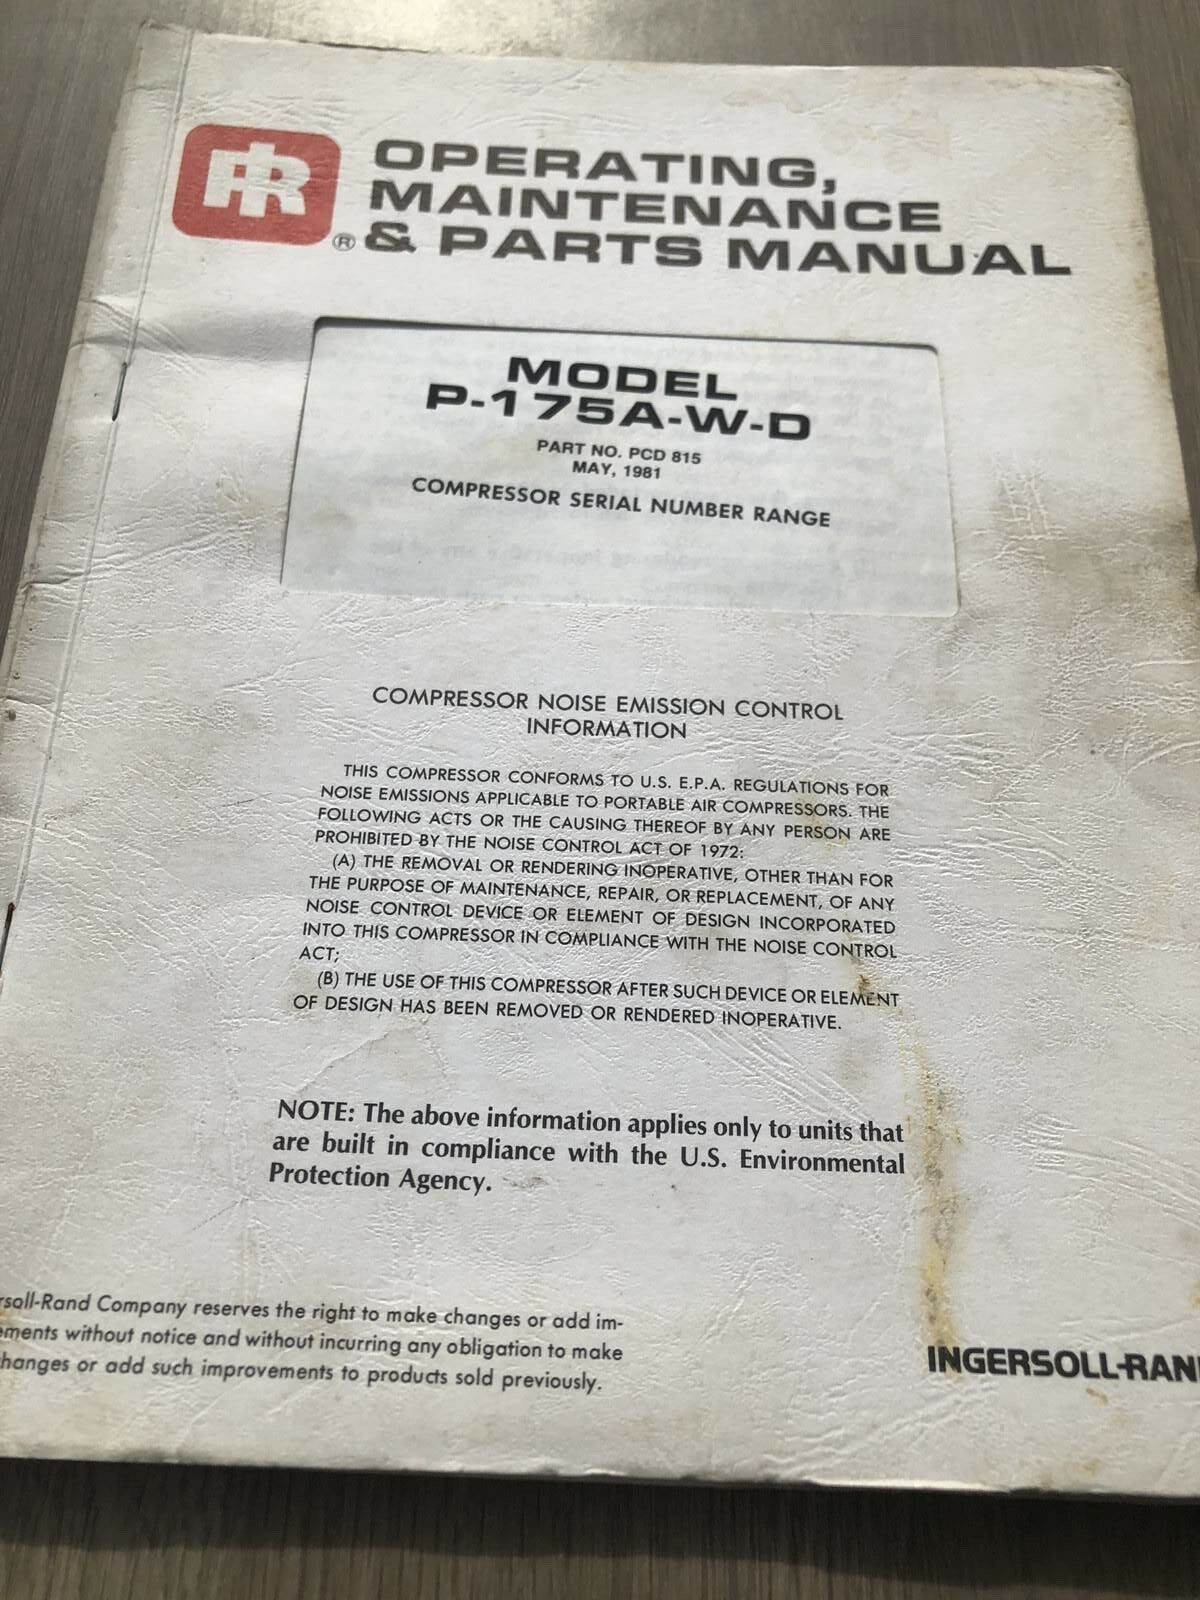 Ingersoll Rand Usa Built P175 Air Compressor Operation Part Maintenance  Manual 1 of 4Only 1 available ...